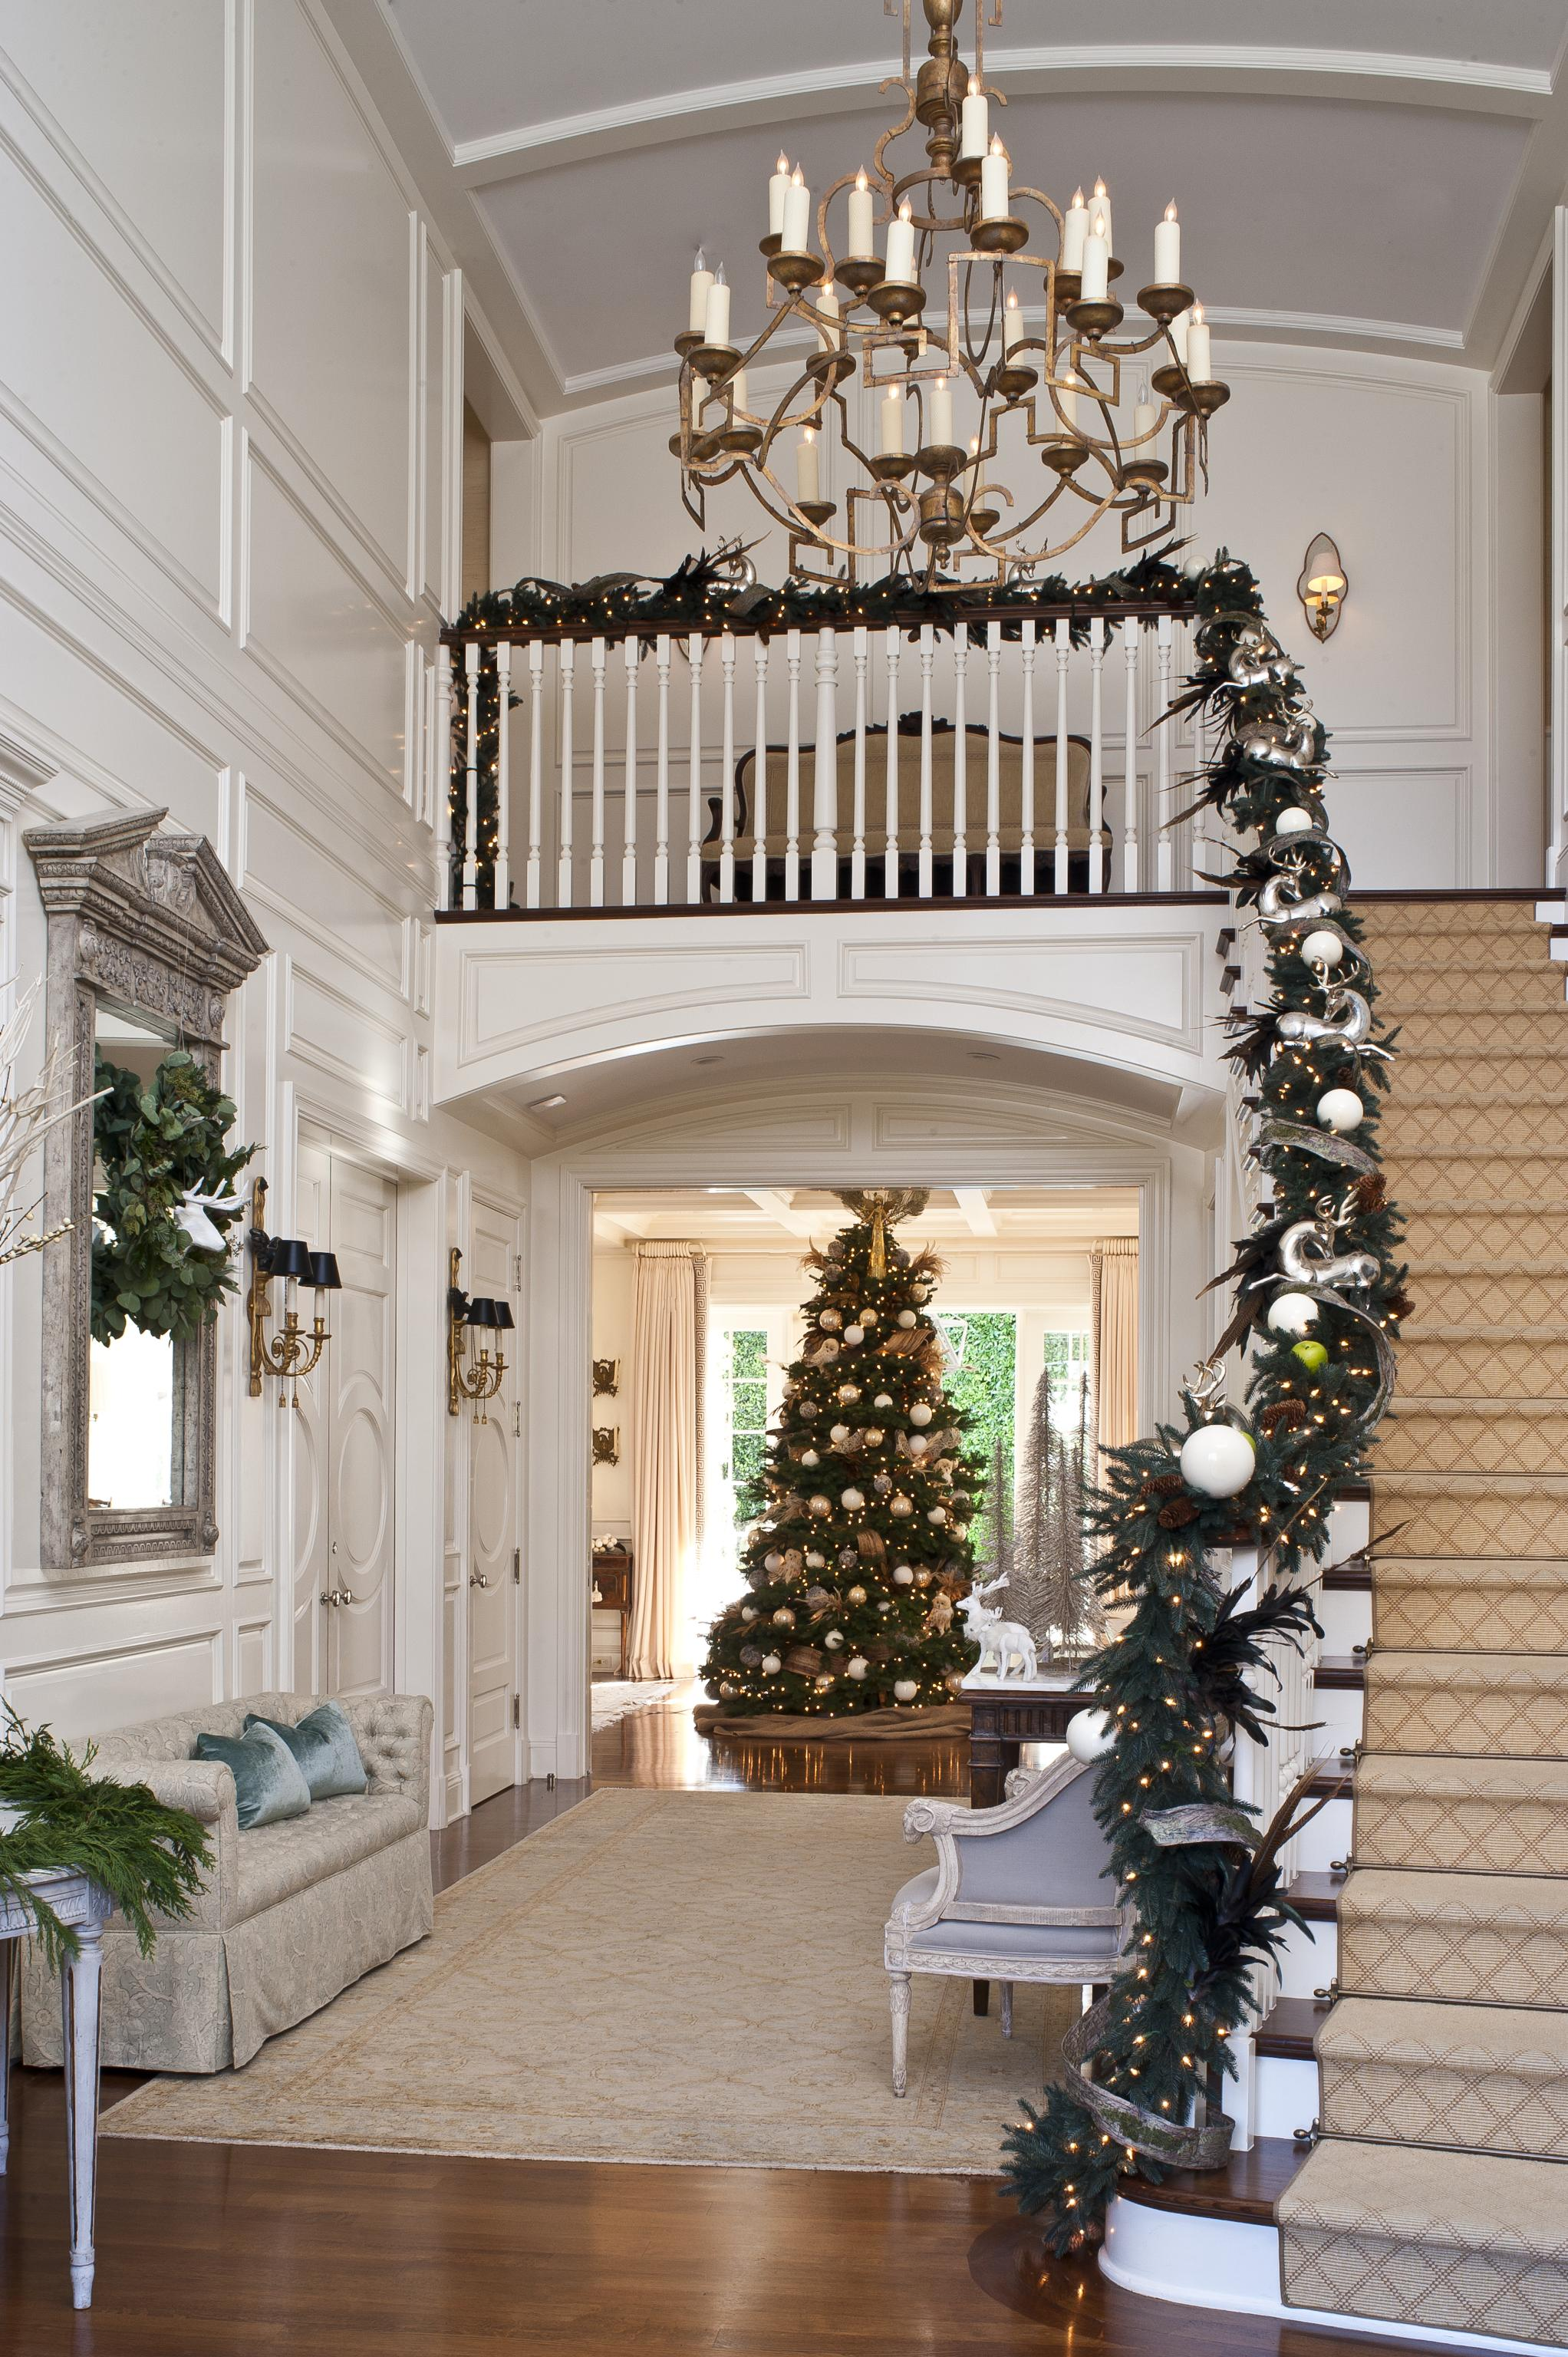 source - Pictures Of Homes Decorated For Christmas On The Inside